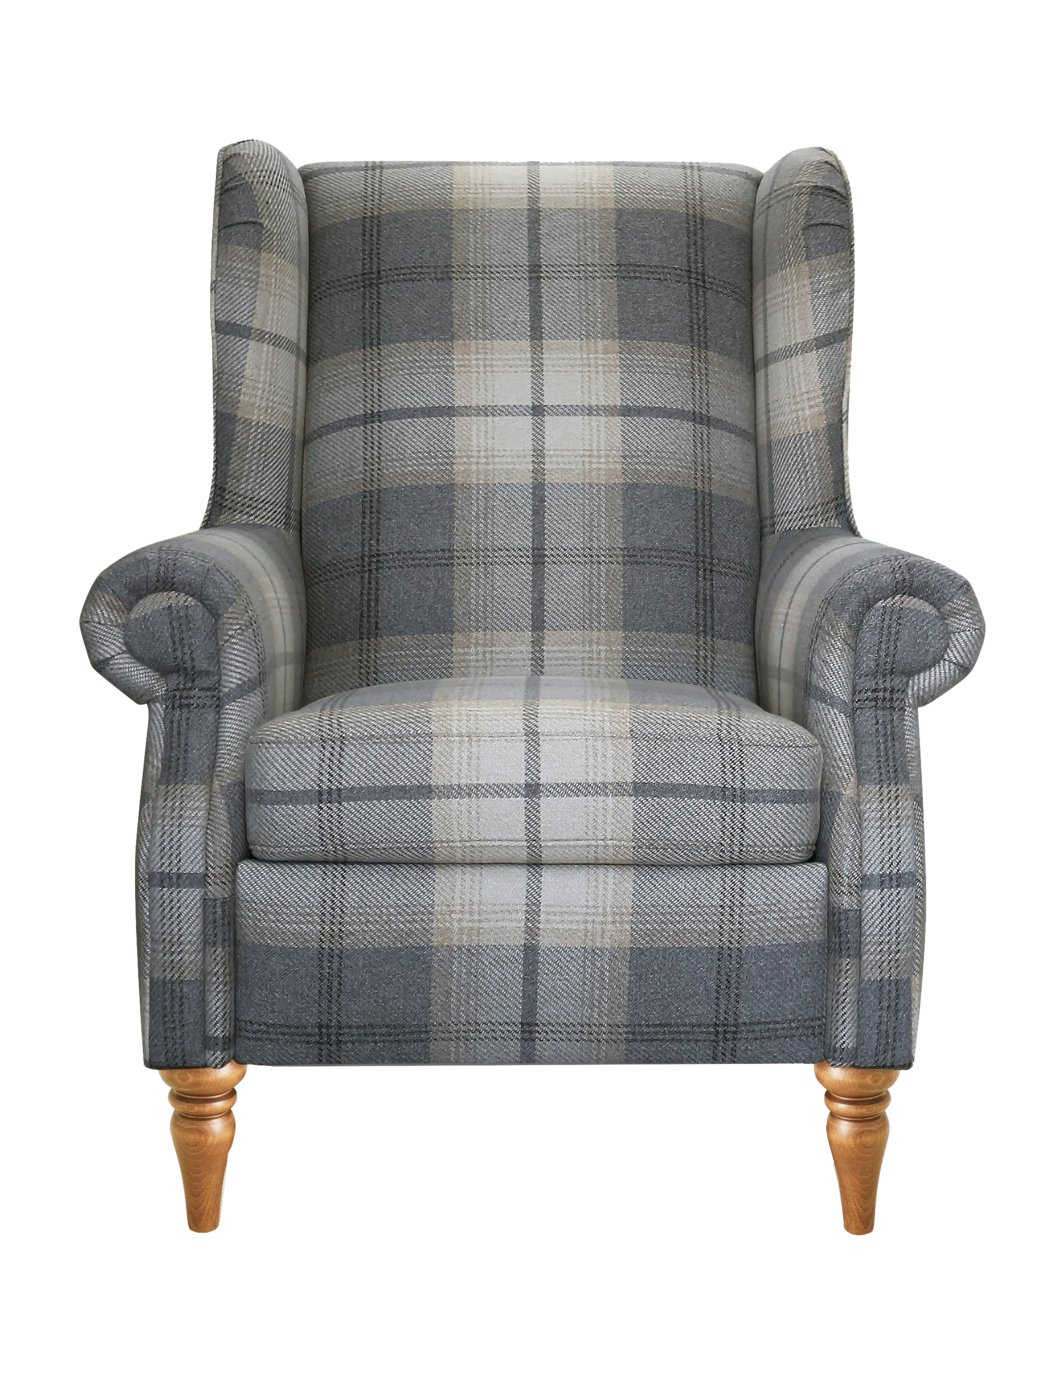 Argos Home Argyll Fabric High Back Chair - Light Grey Check